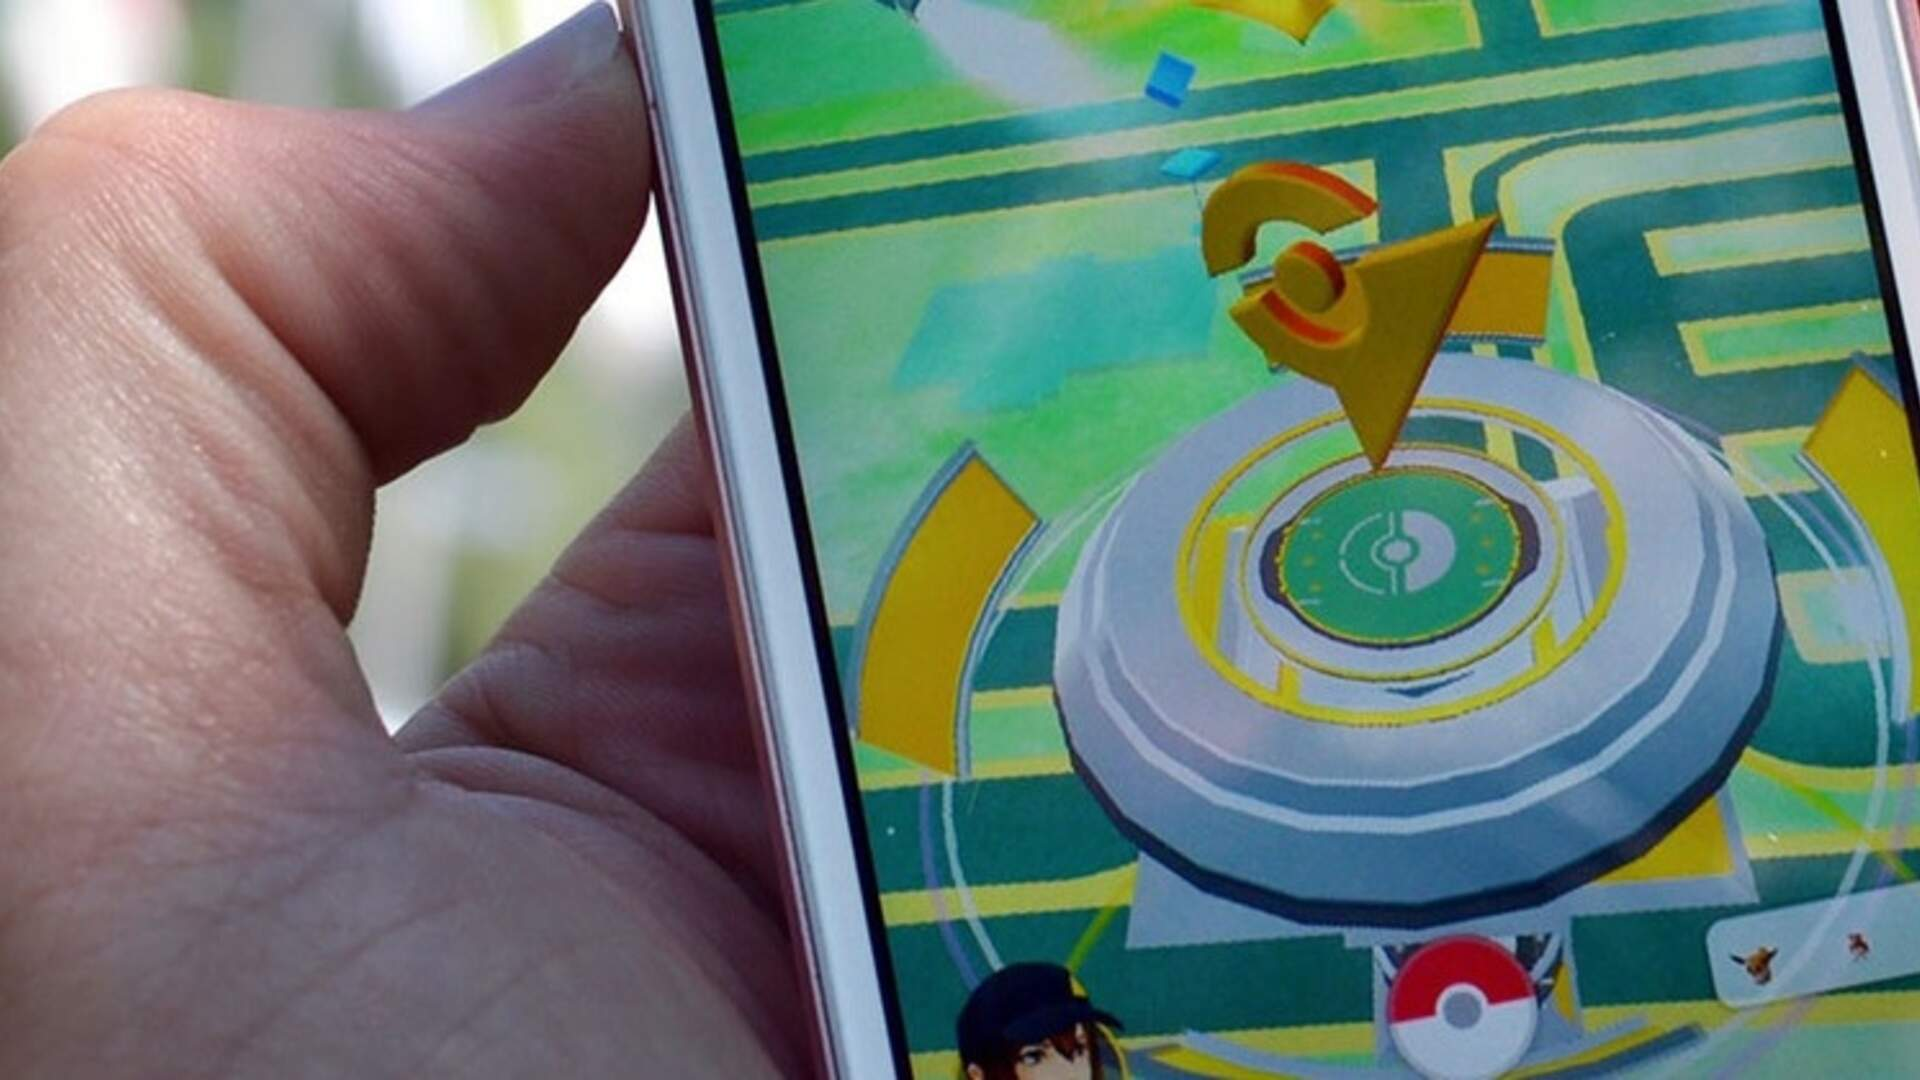 Pokemon Go PokeCoins - How to Earn More PokeCoins in Gyms, Events and Pokestops